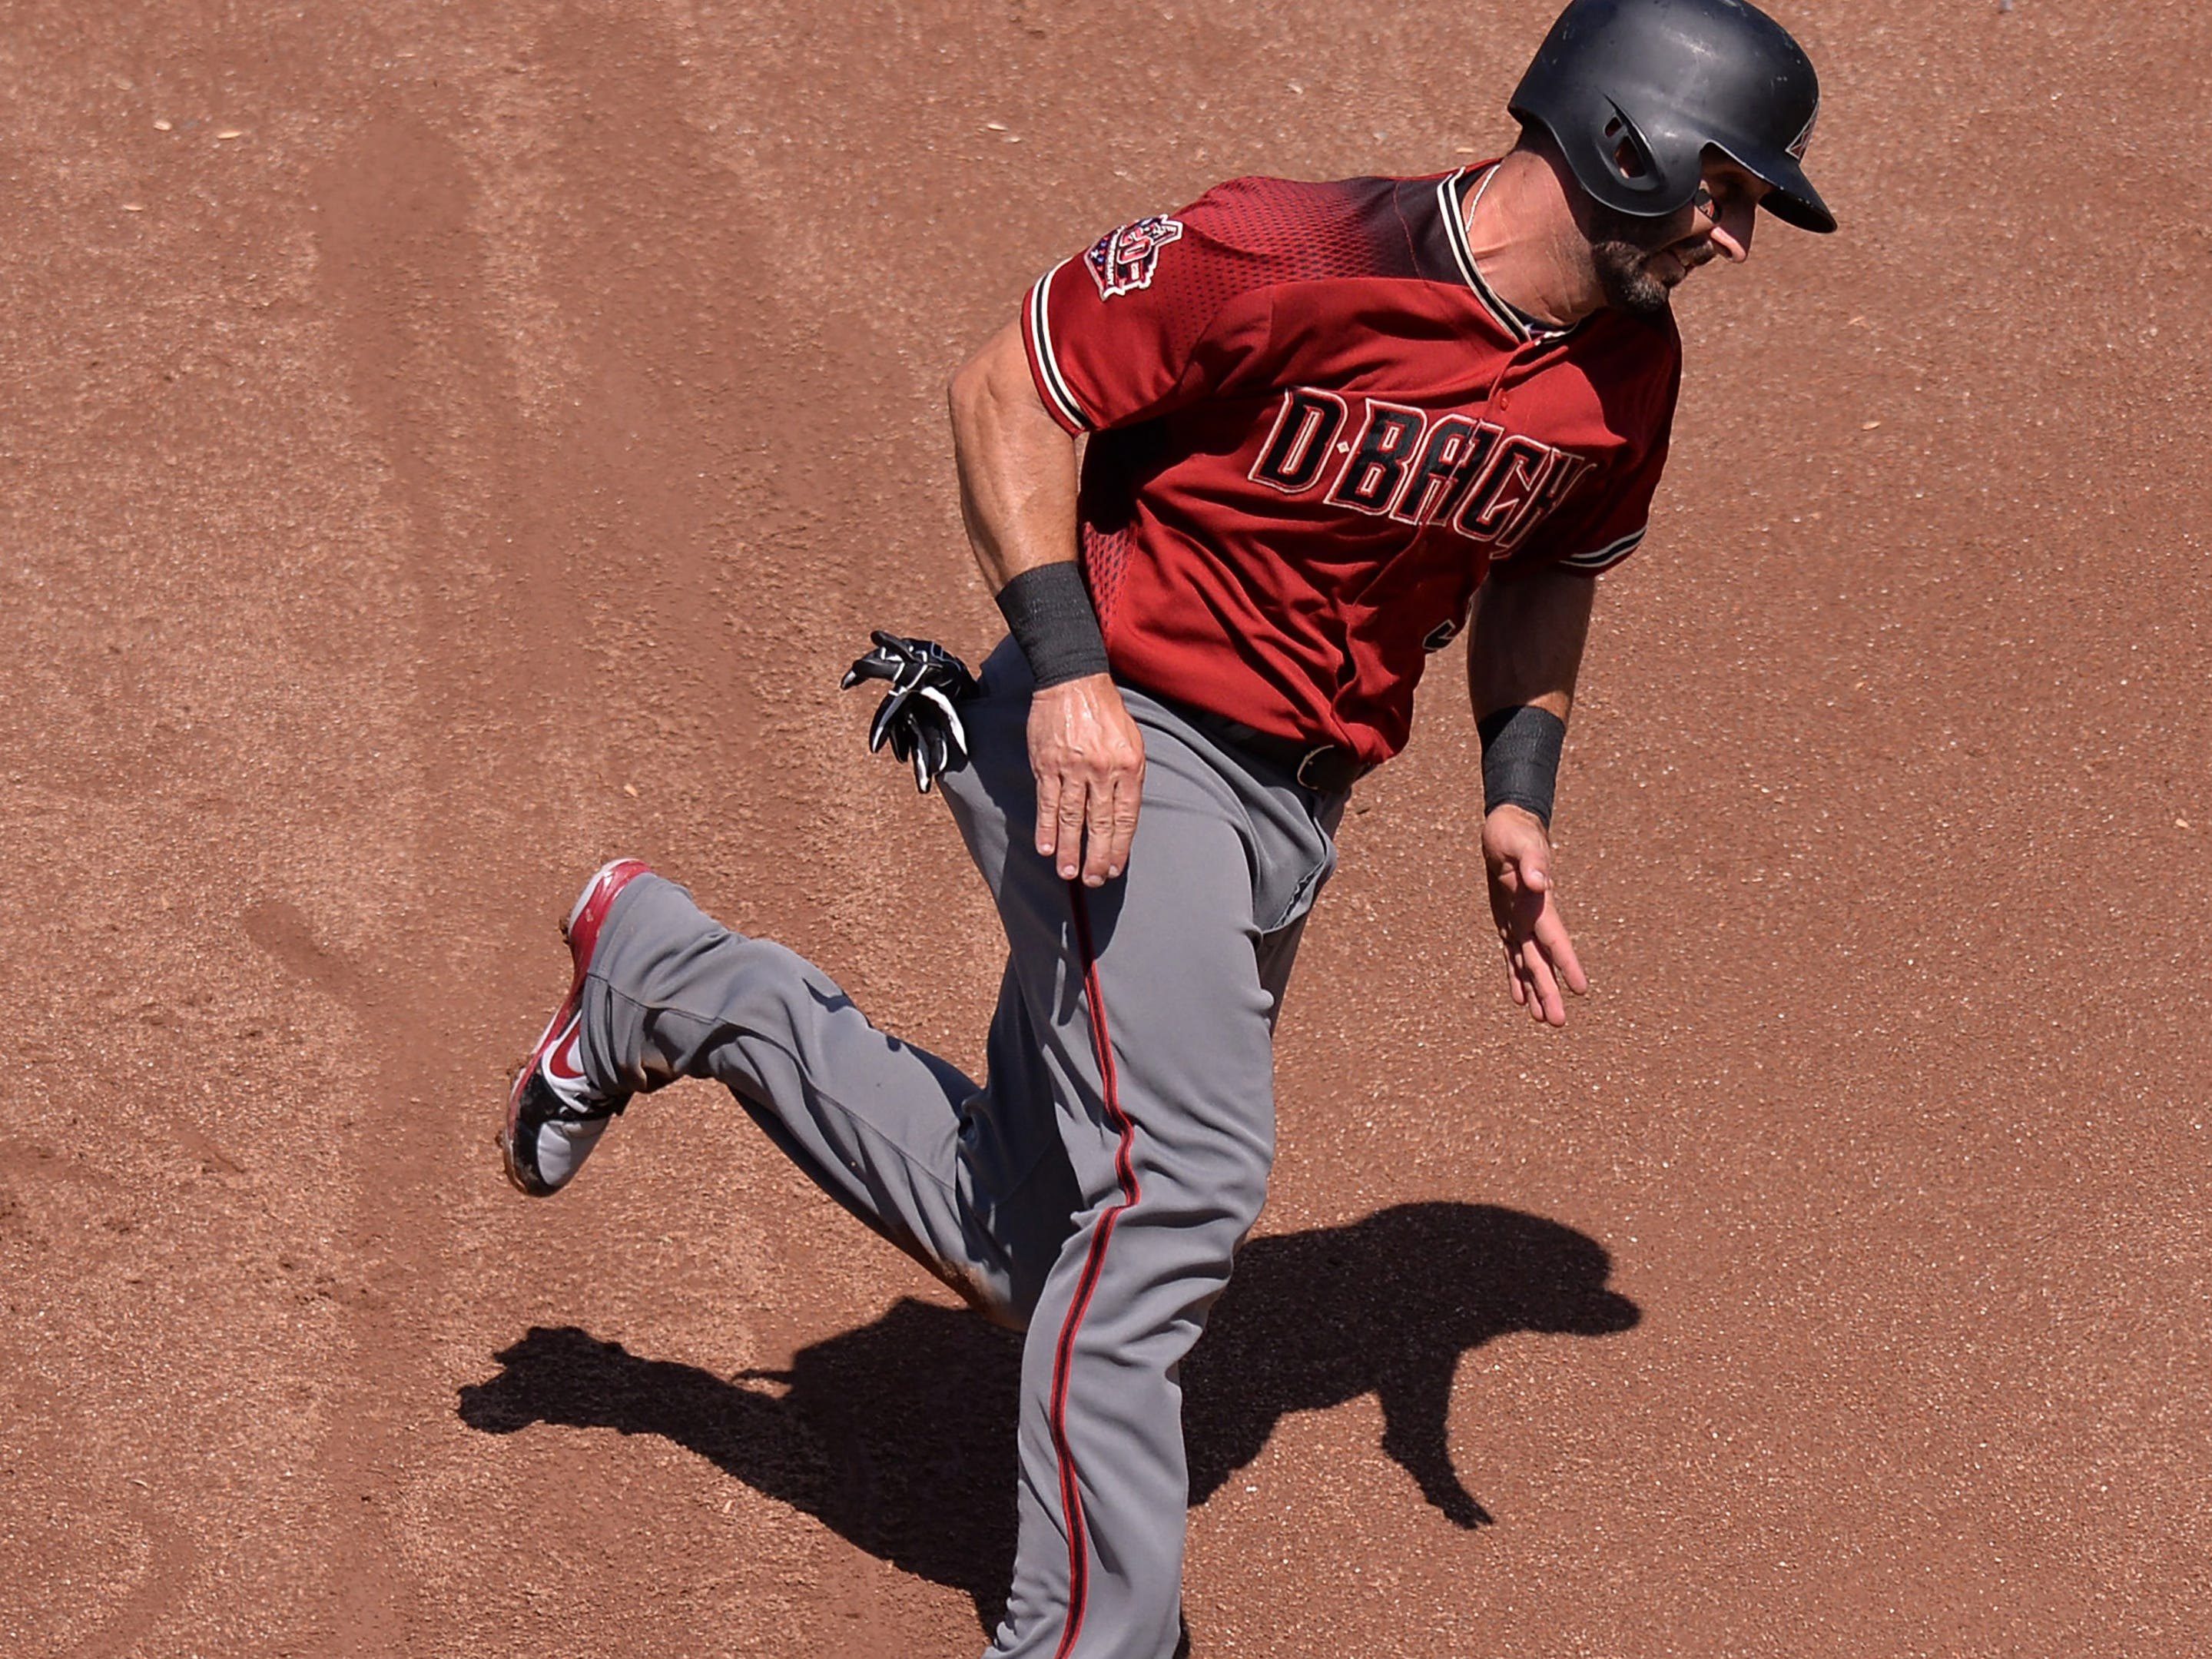 Aug 19, 2018; San Diego, CA, USA; Arizona Diamondbacks second baseman Daniel Descalso (3) rounds third to score on a single by catcher Jeff Mathis (not pictured) during the second inning against the San Diego Padres at Petco Park. Mandatory Credit: Jake Roth-USA TODAY Sports